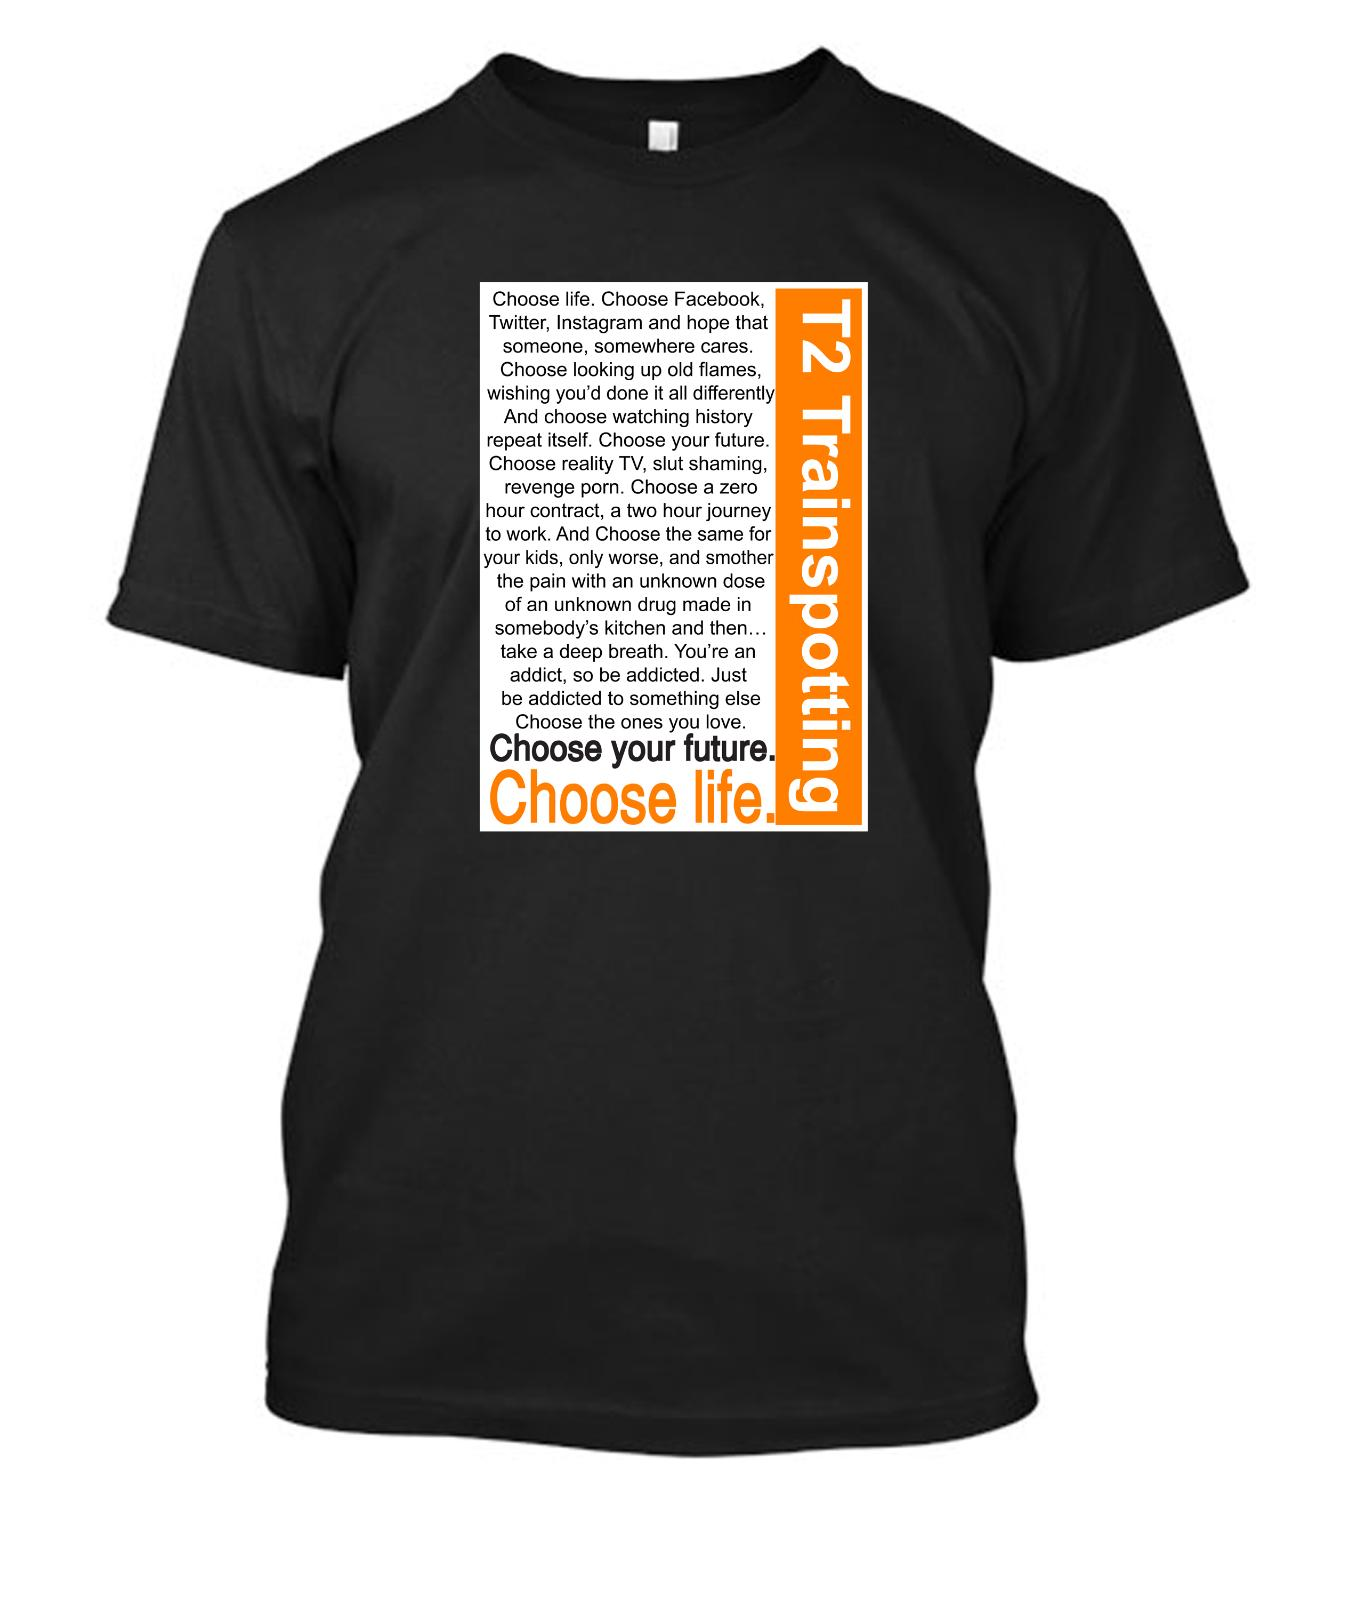 2623ef03c400 Trainspotting 2 TS2 Choose Life Tshirt T Shirt Tee Shirt 25 Colours 4 Sizes  Daily Tee Shirts Coolest Shirt From Flairmerchan, $11.01| DHgate.Com